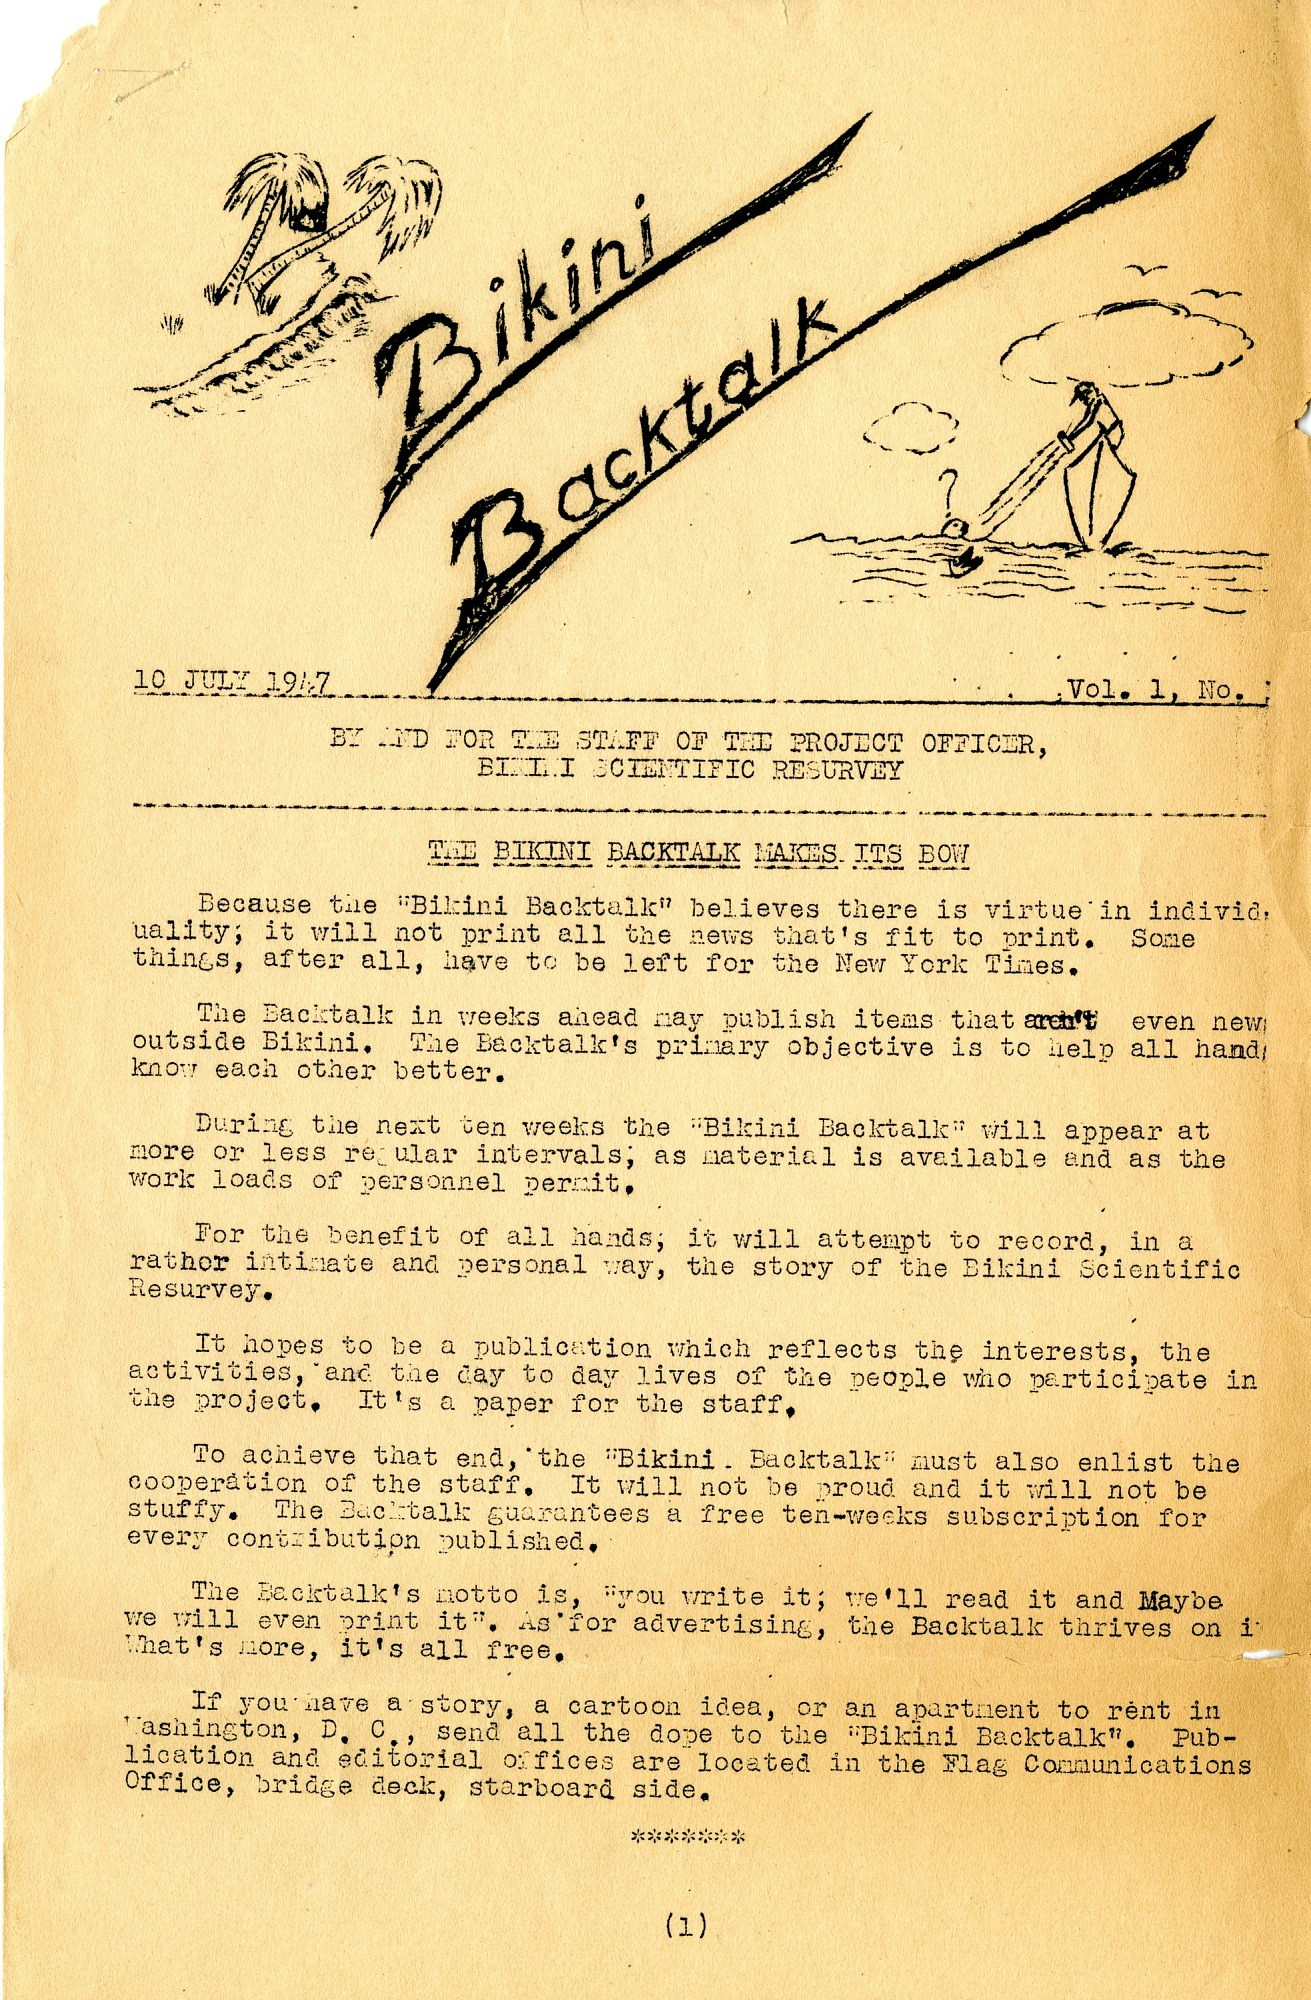 Preview of Bikini Backtalk Newsletter Vol. 1, No. 1 July 10, 1947